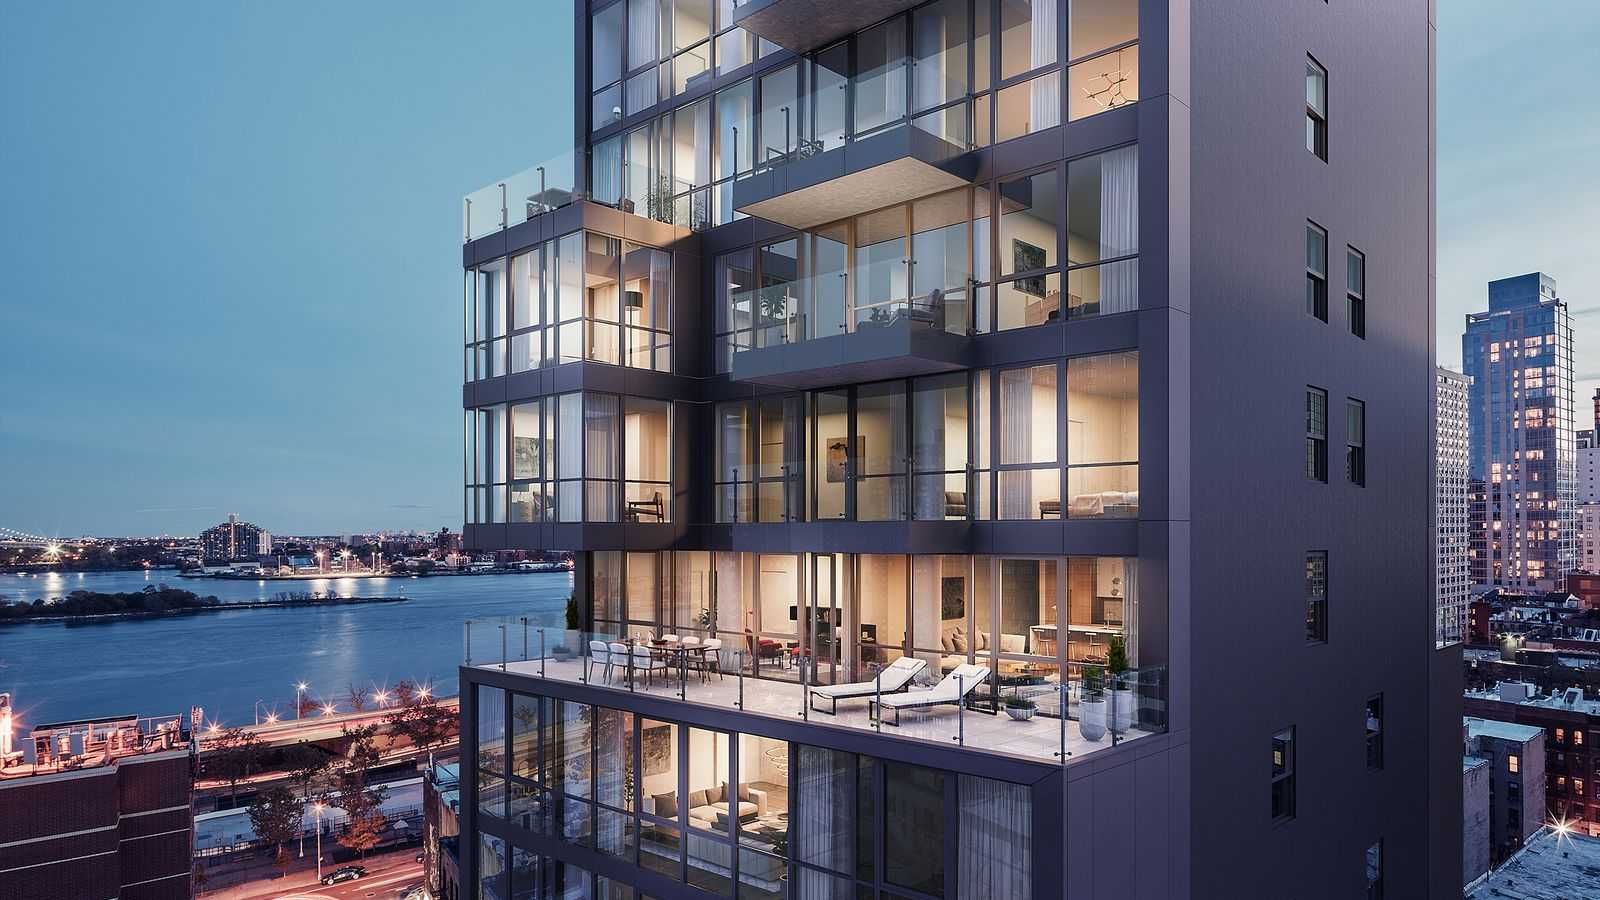 Upper east side condo vitre launches sales from 915k - 3 bedroom apartments for sale nyc ...